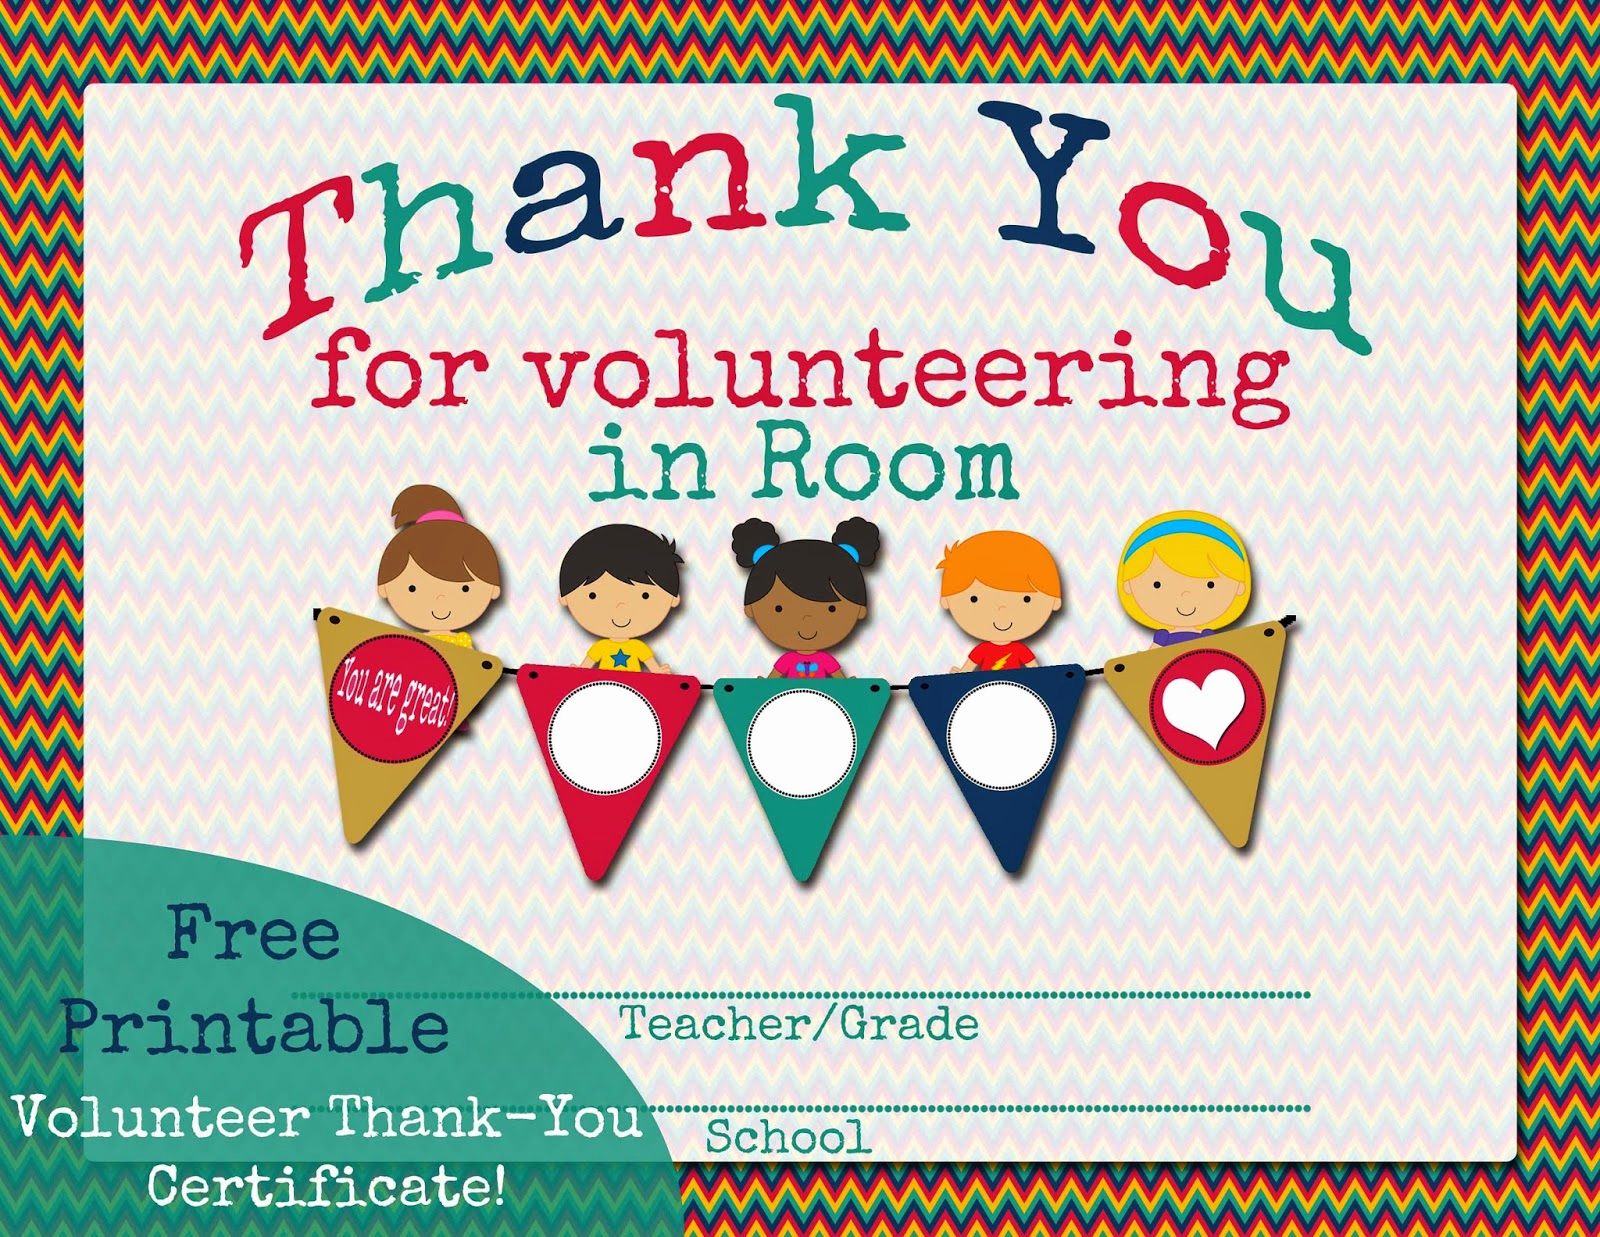 Thank You for Volunteering Fresh My Fashionable Designs Free Printable Thank You for